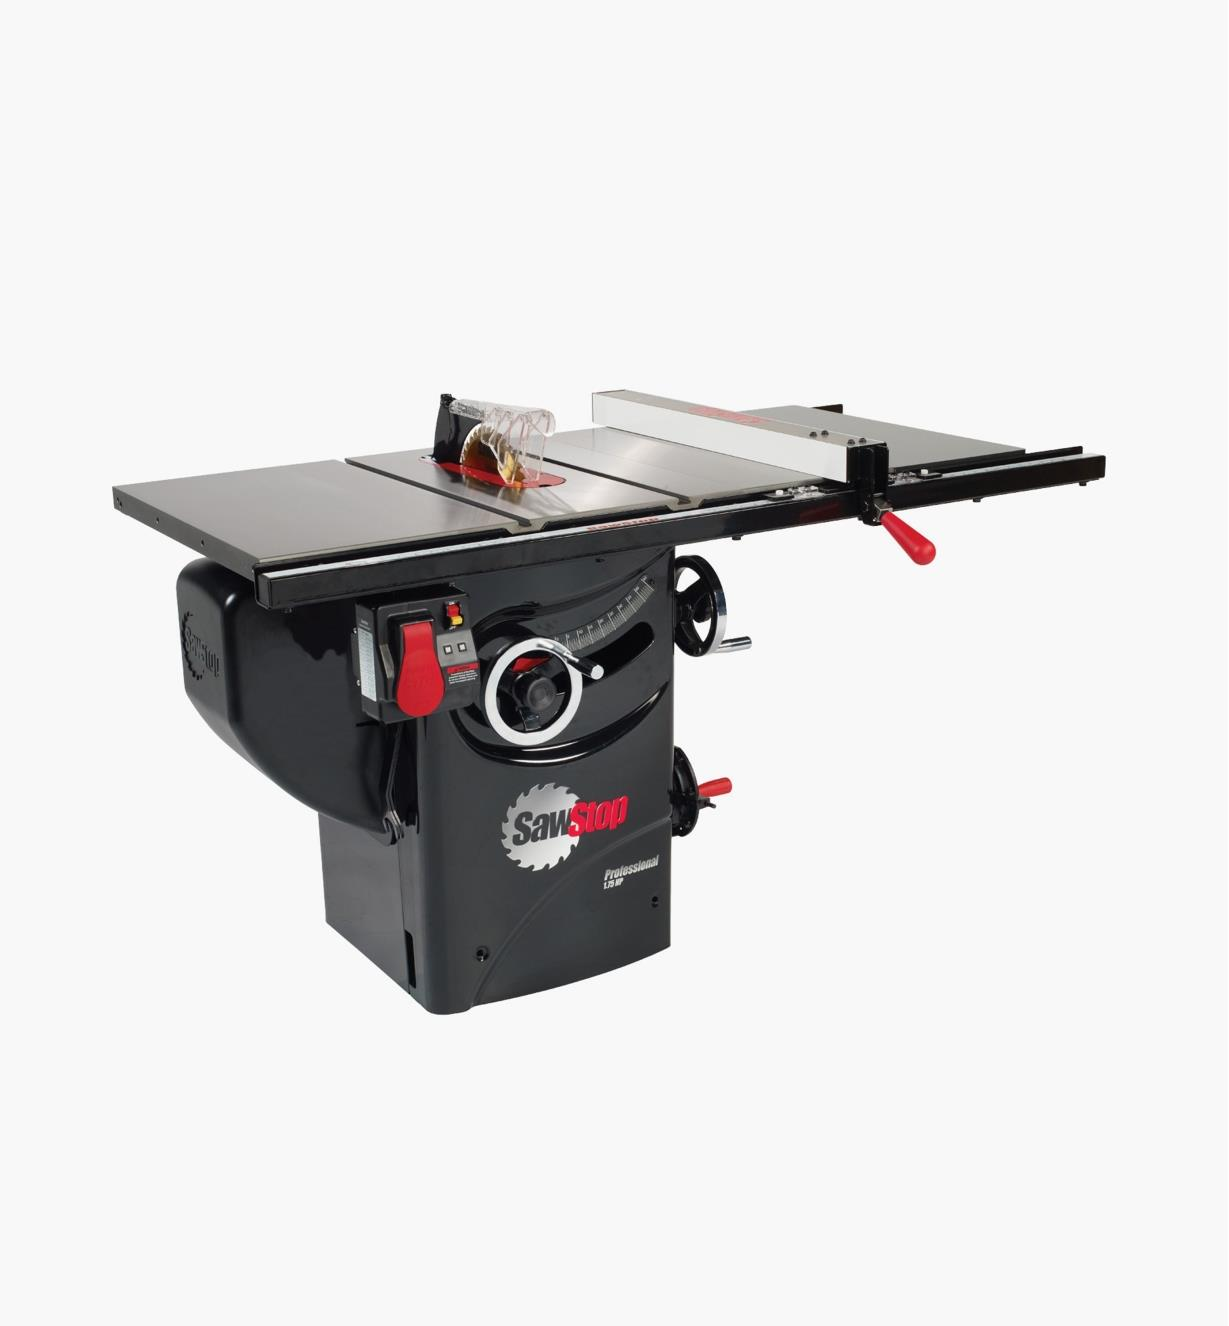 95T2060 - SawStop 1.75hp Professional Cabinet Saw with Premium Fence